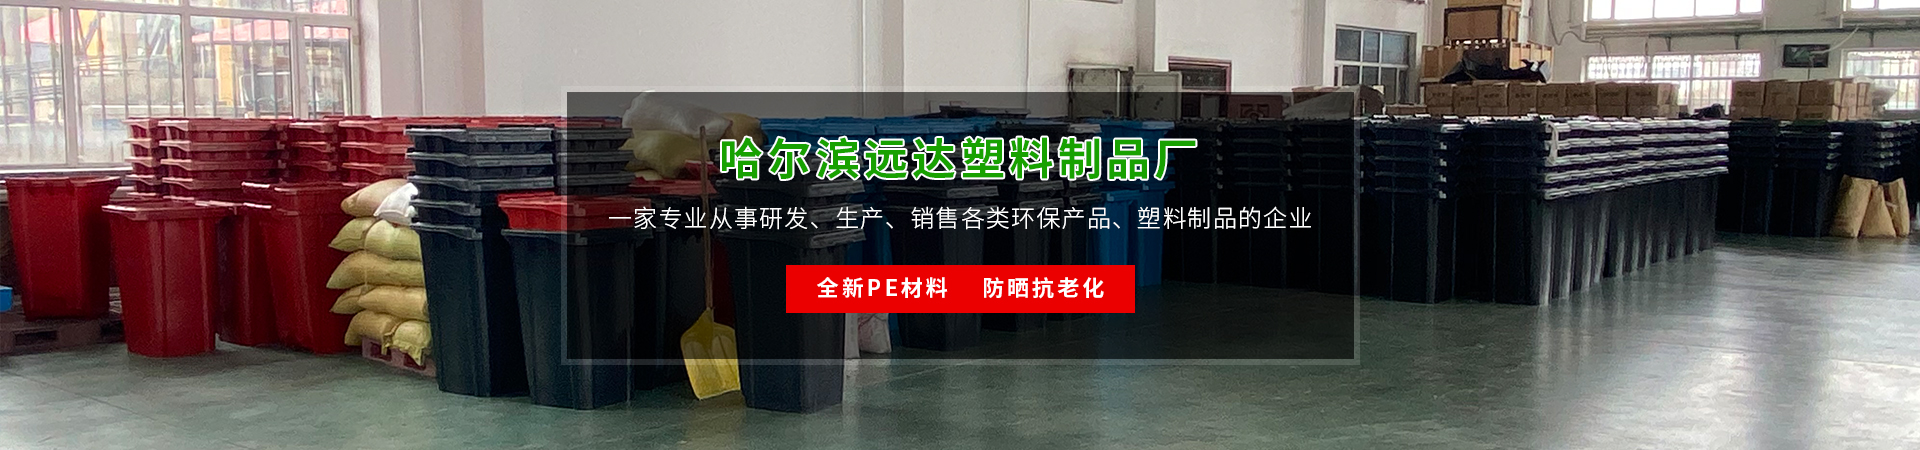 http://www.hrbyuanda.cn/data/upload/202010/20201024141257_558.jpg